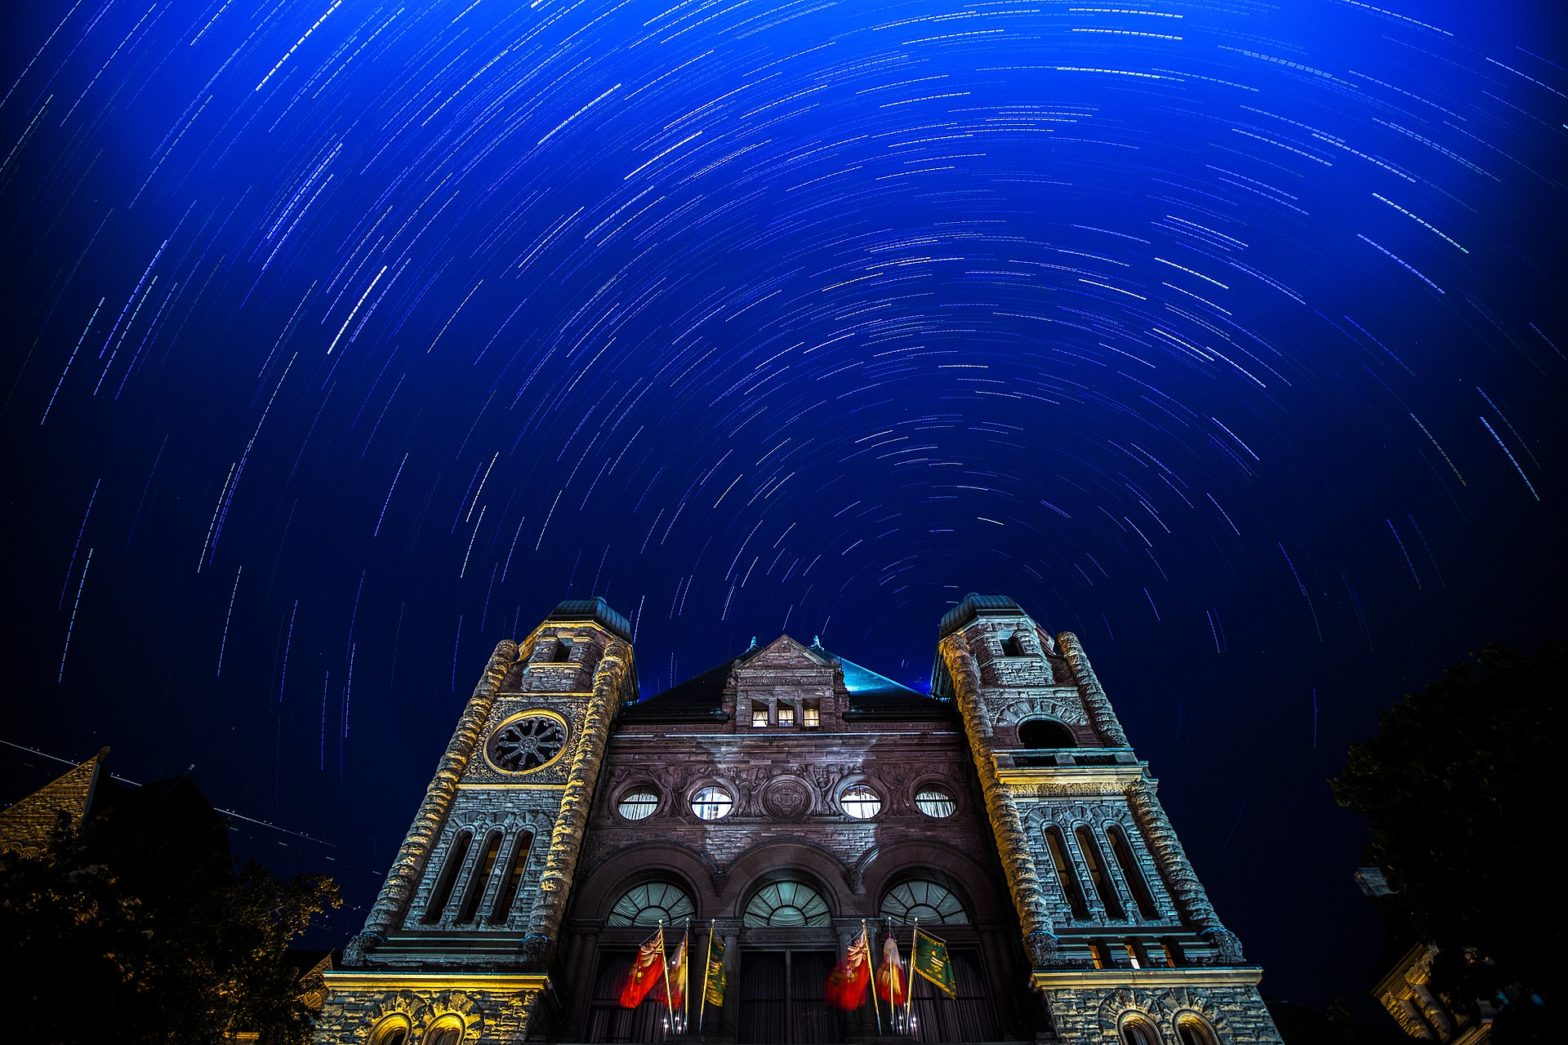 Star Trails over Ontario Legislative Building